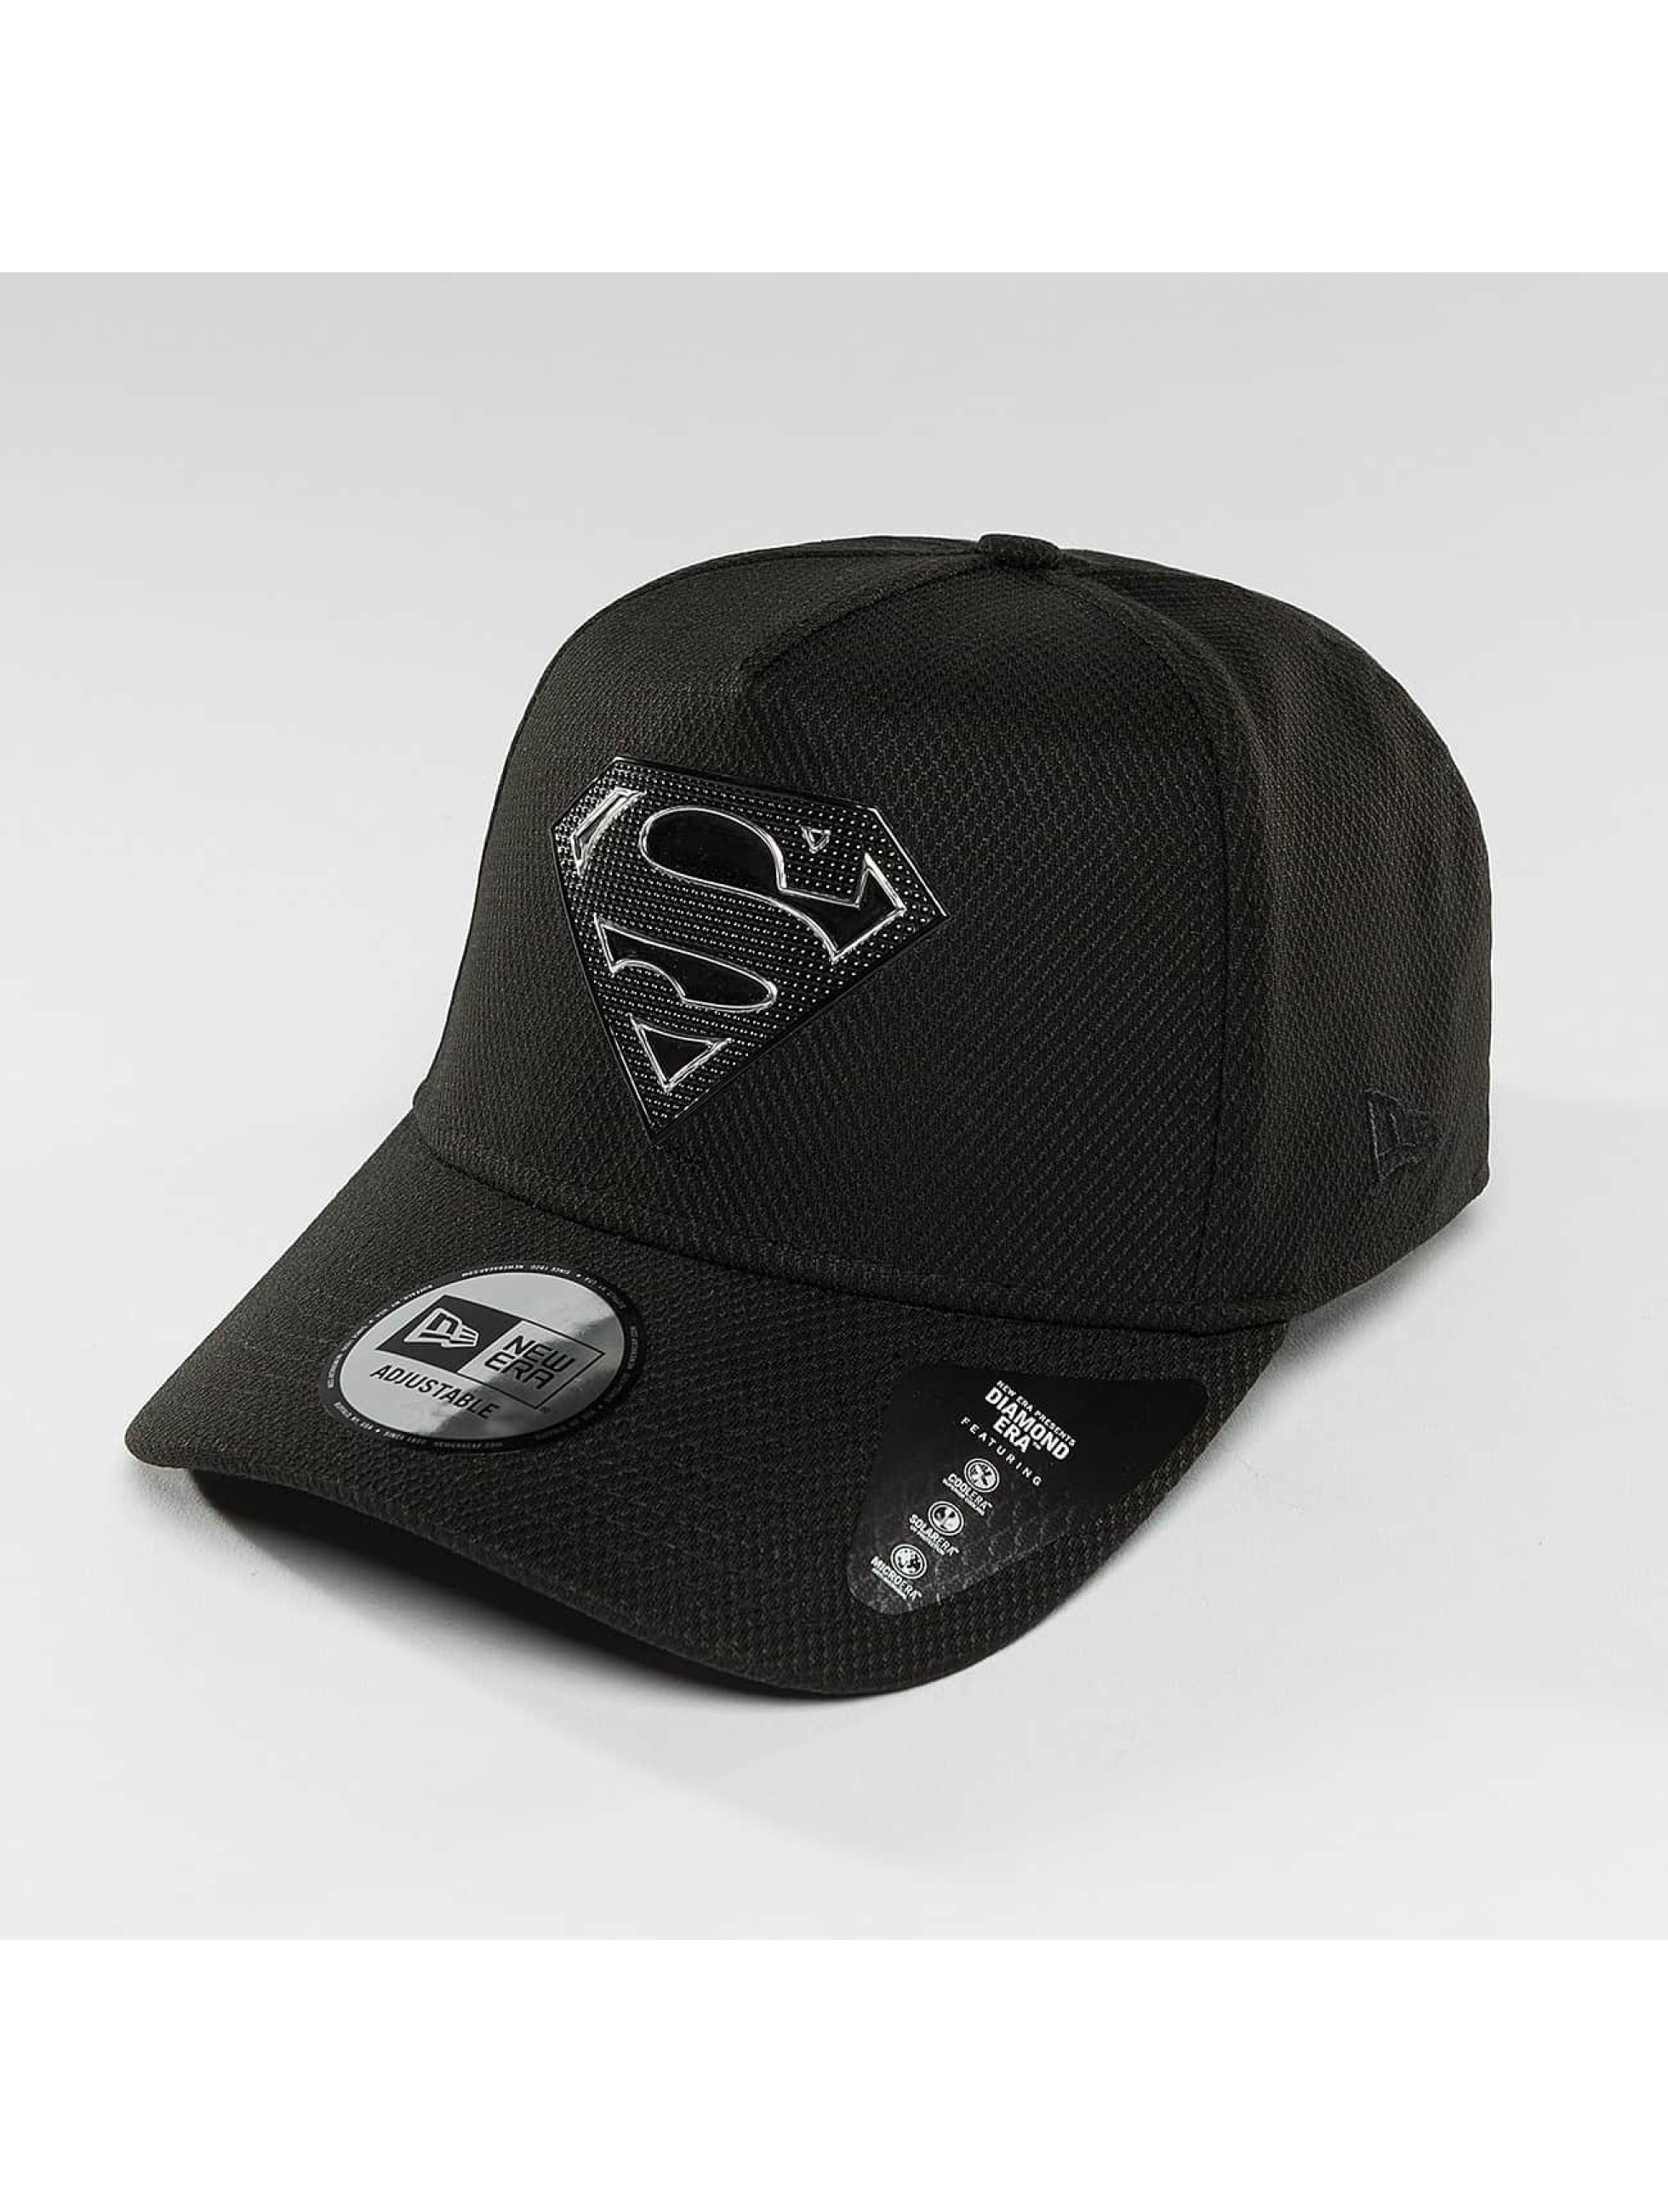 New Era Snapback Cap Blacked Out black